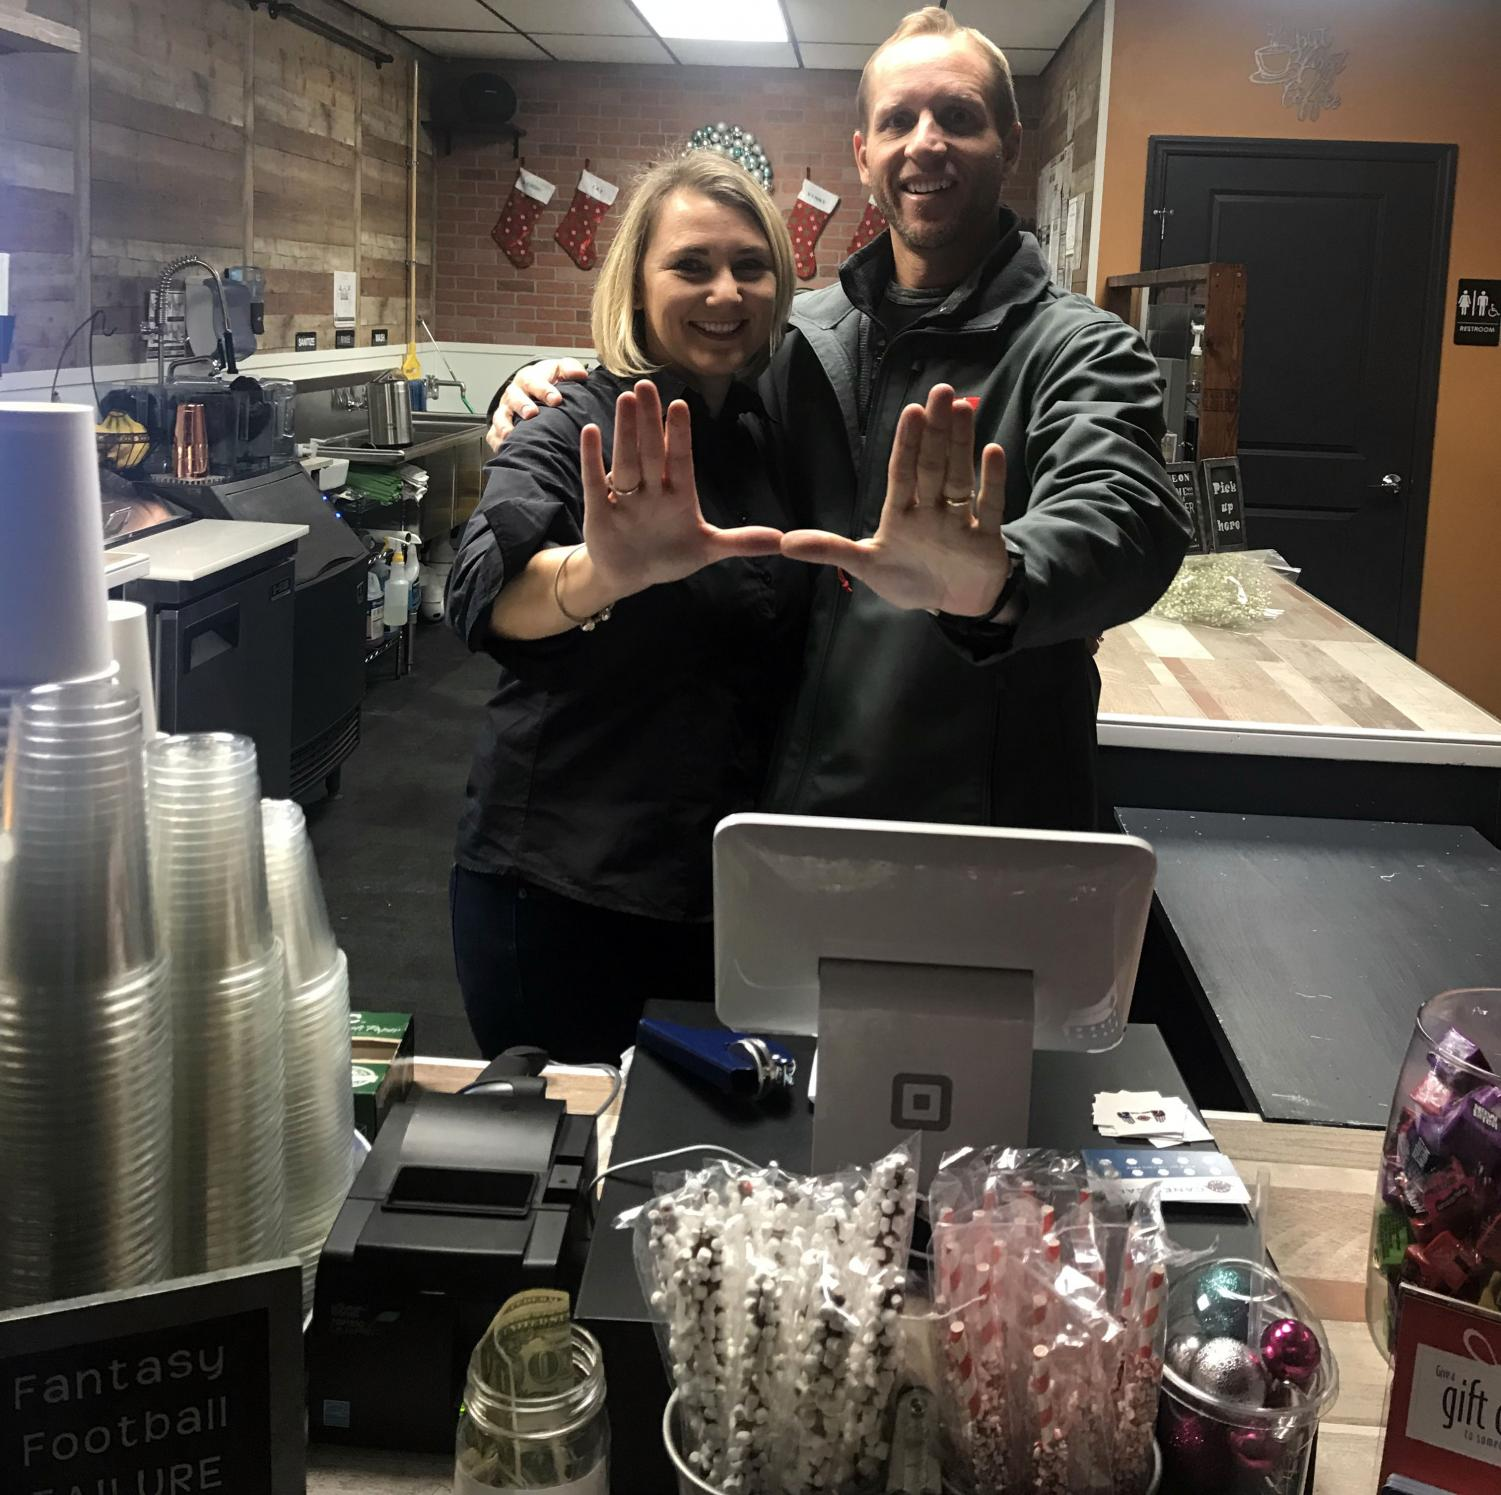 Vince Parisi and his wife Kristy Parisi together as the formal owners of the Canes Cafe'.